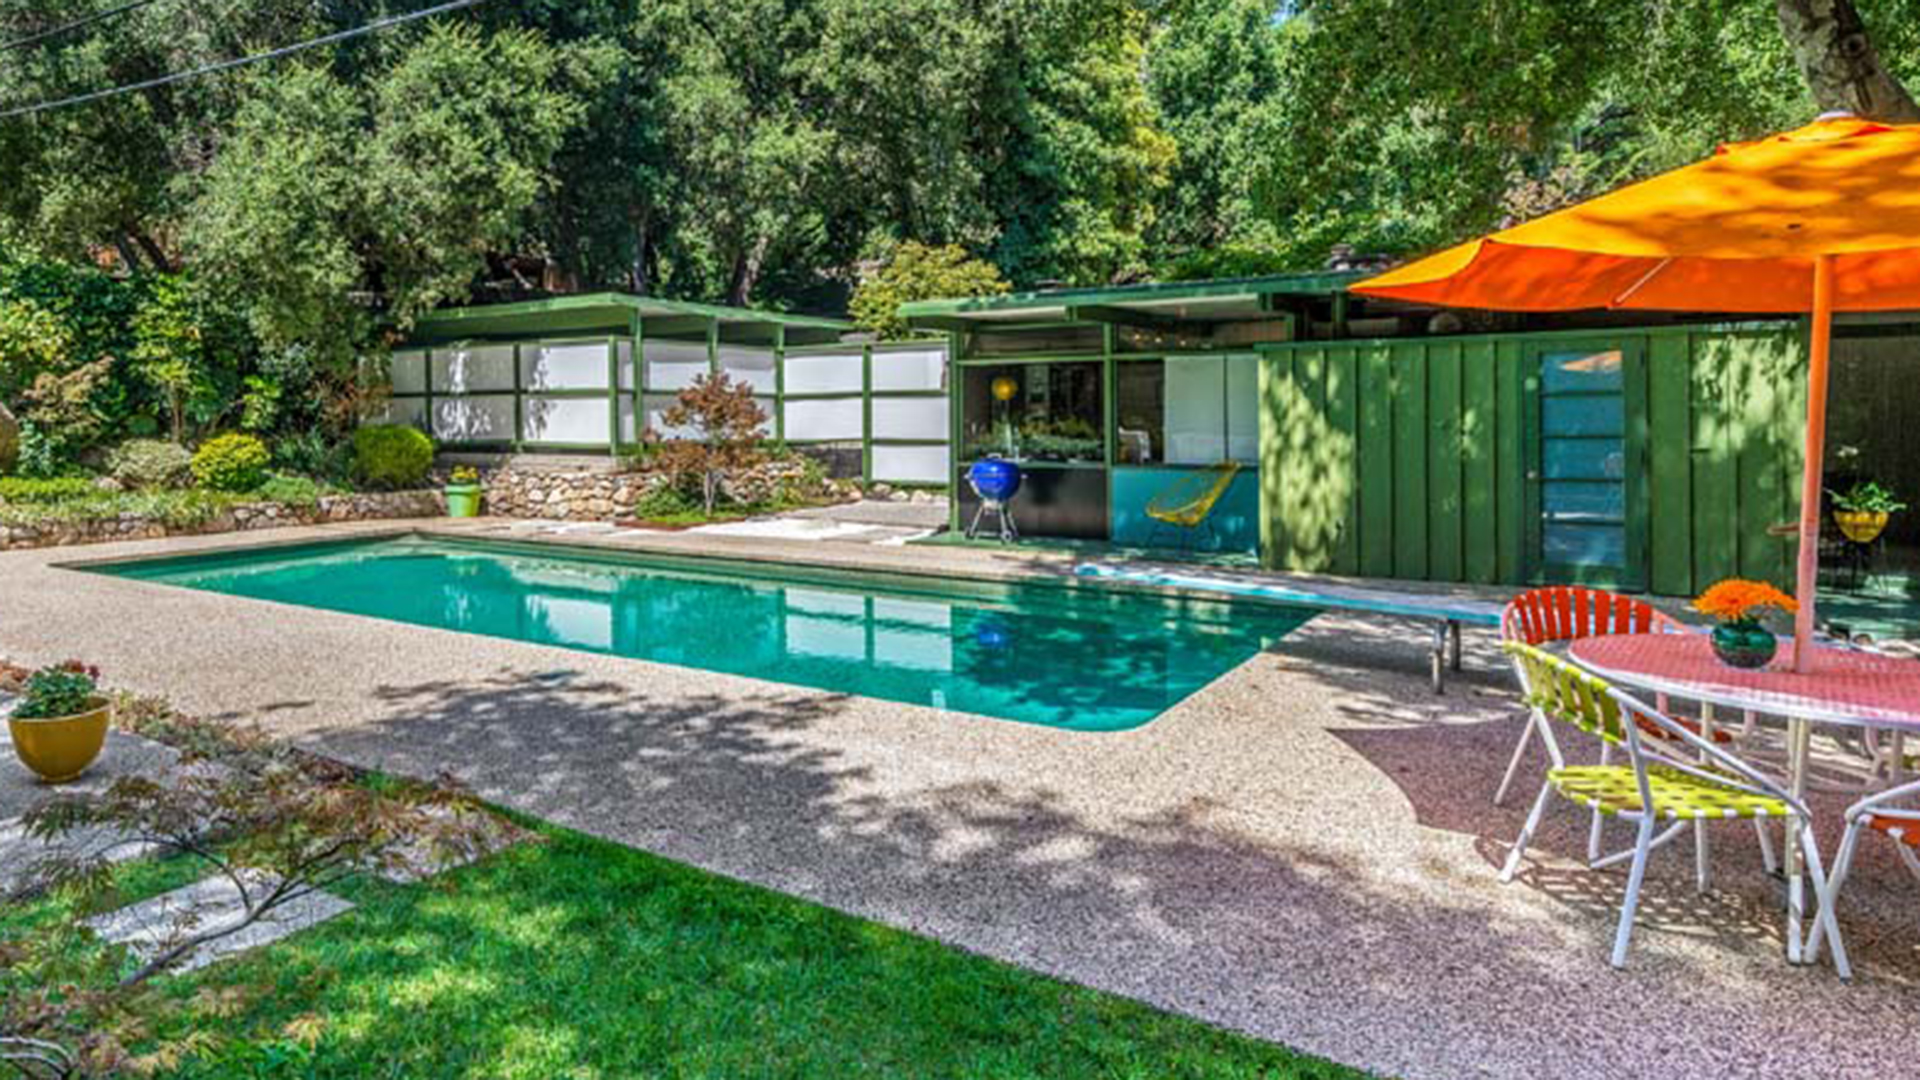 Bright S Midcentury Modern Los Angeles Home Is For Sale At - Midcentury modern la